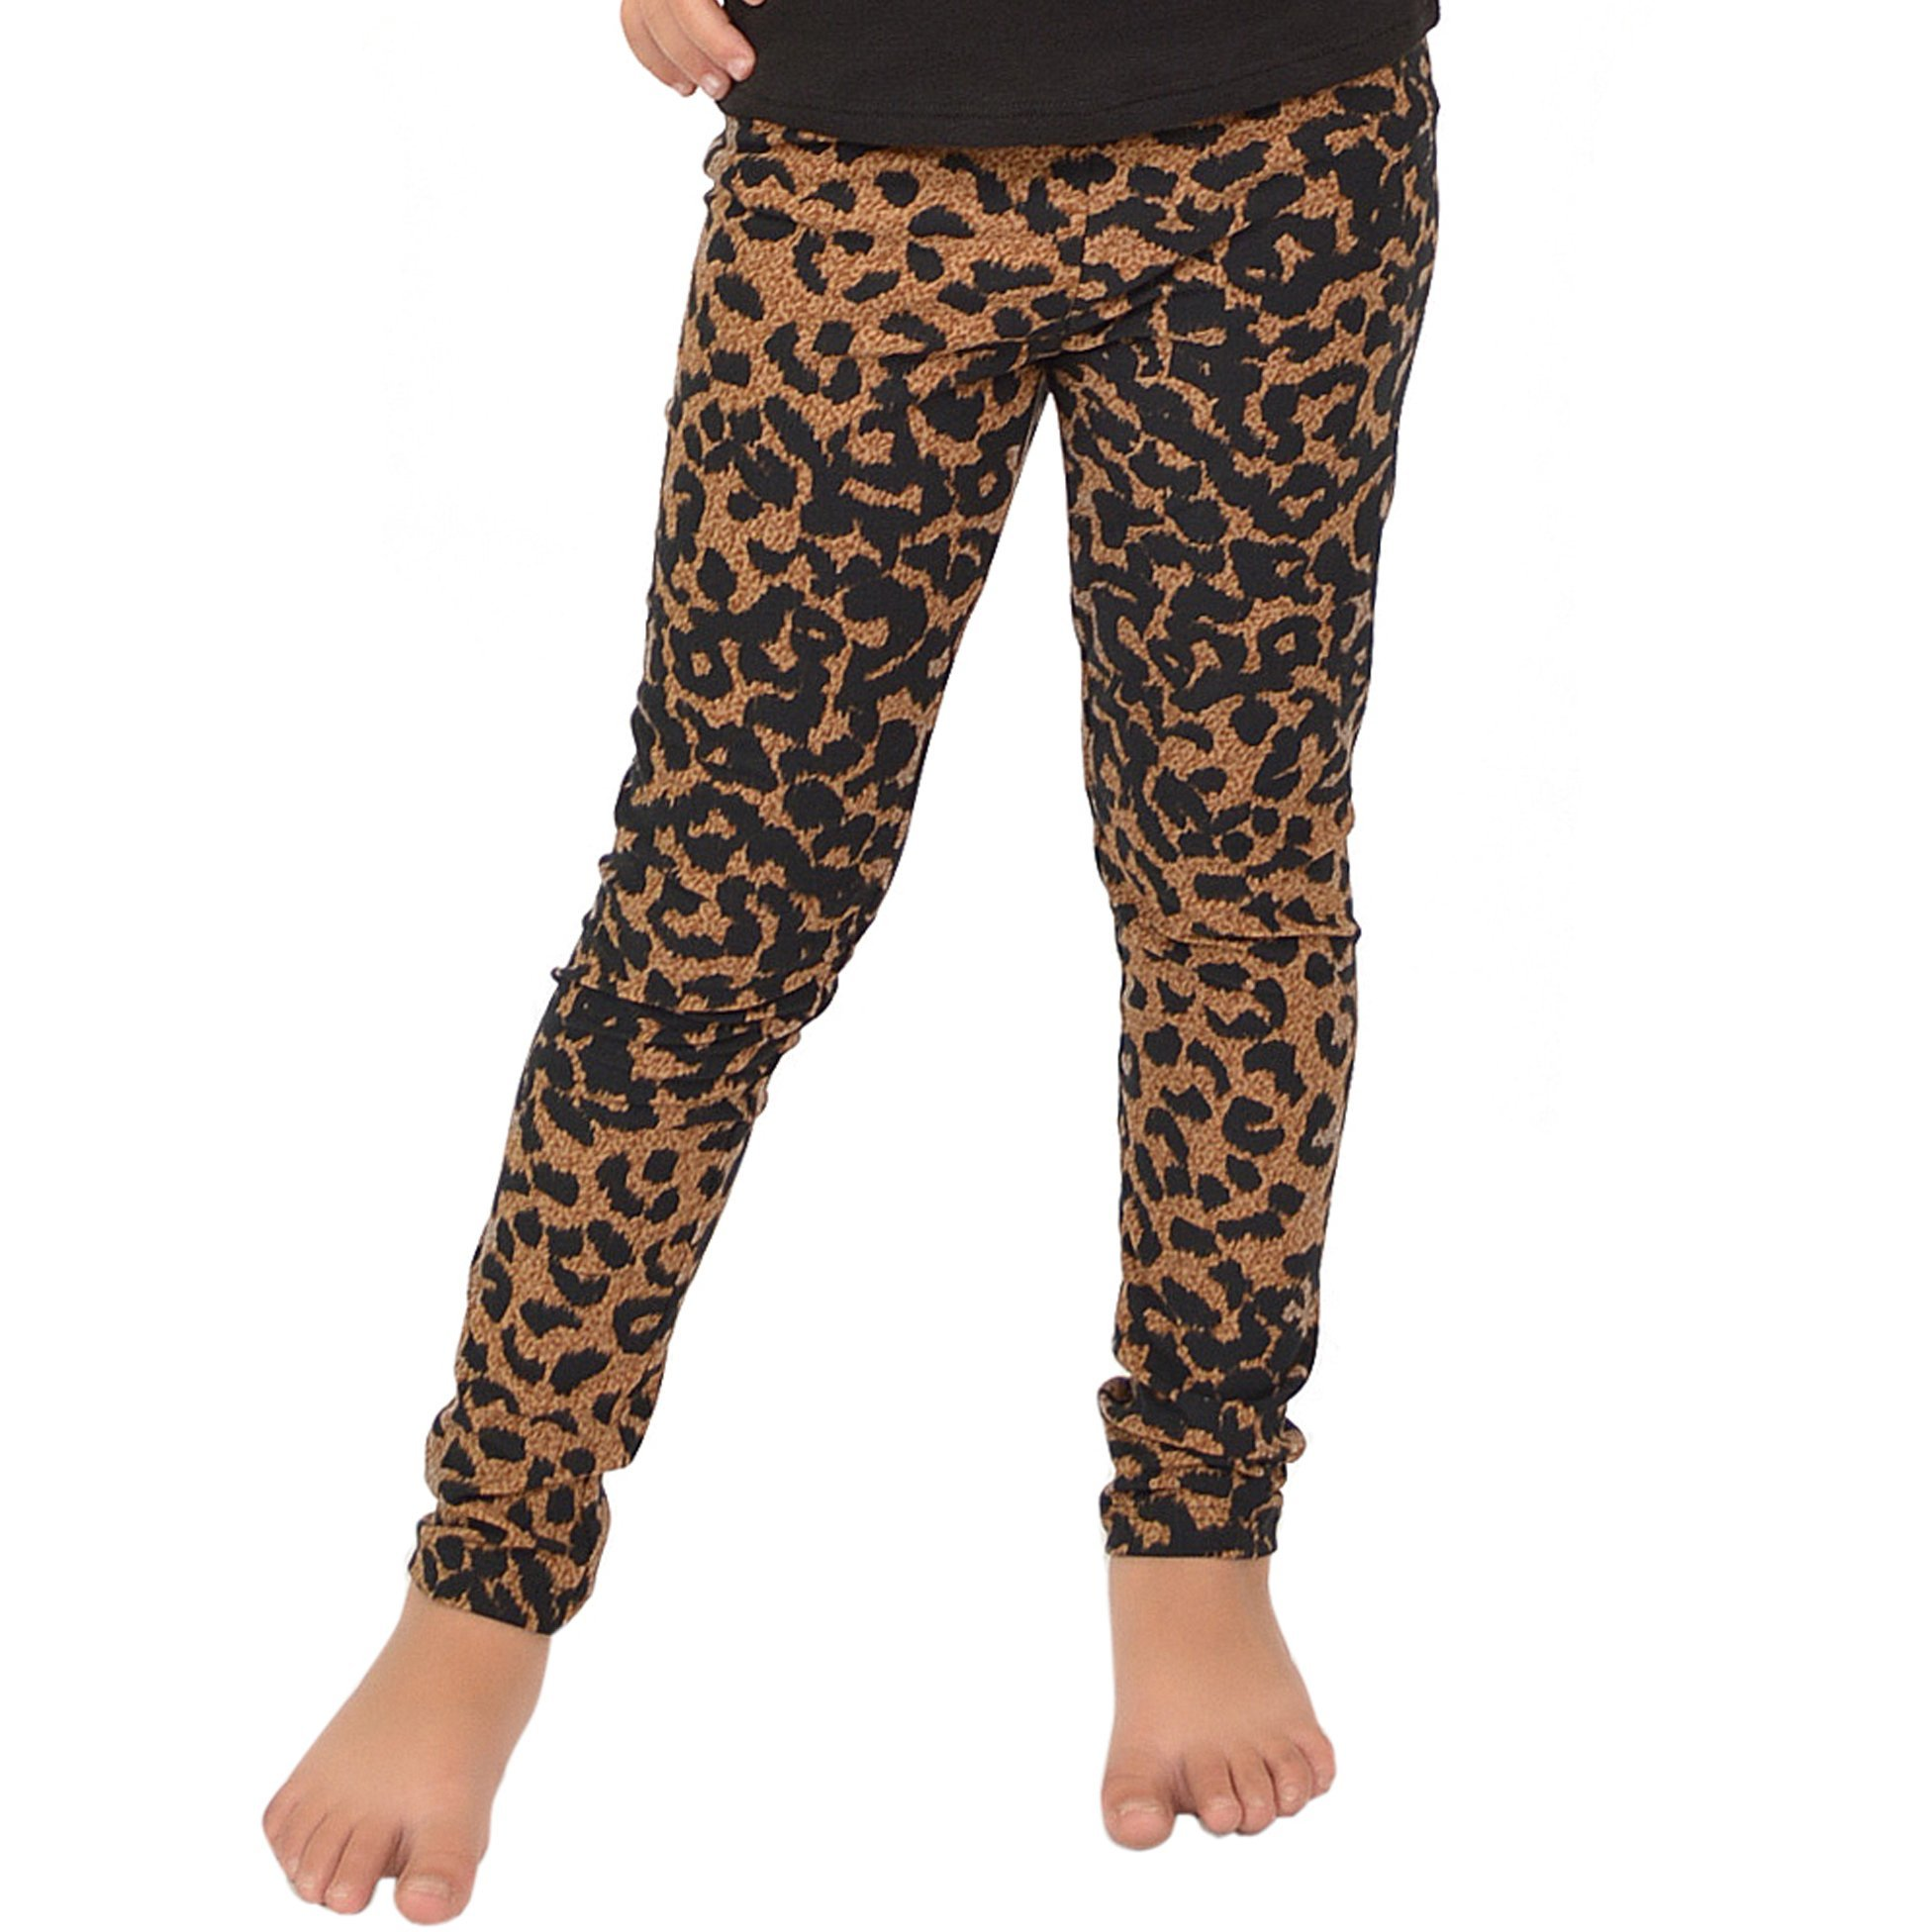 Stretch is Comfort Girl's Leggings Brown Cheetah Small